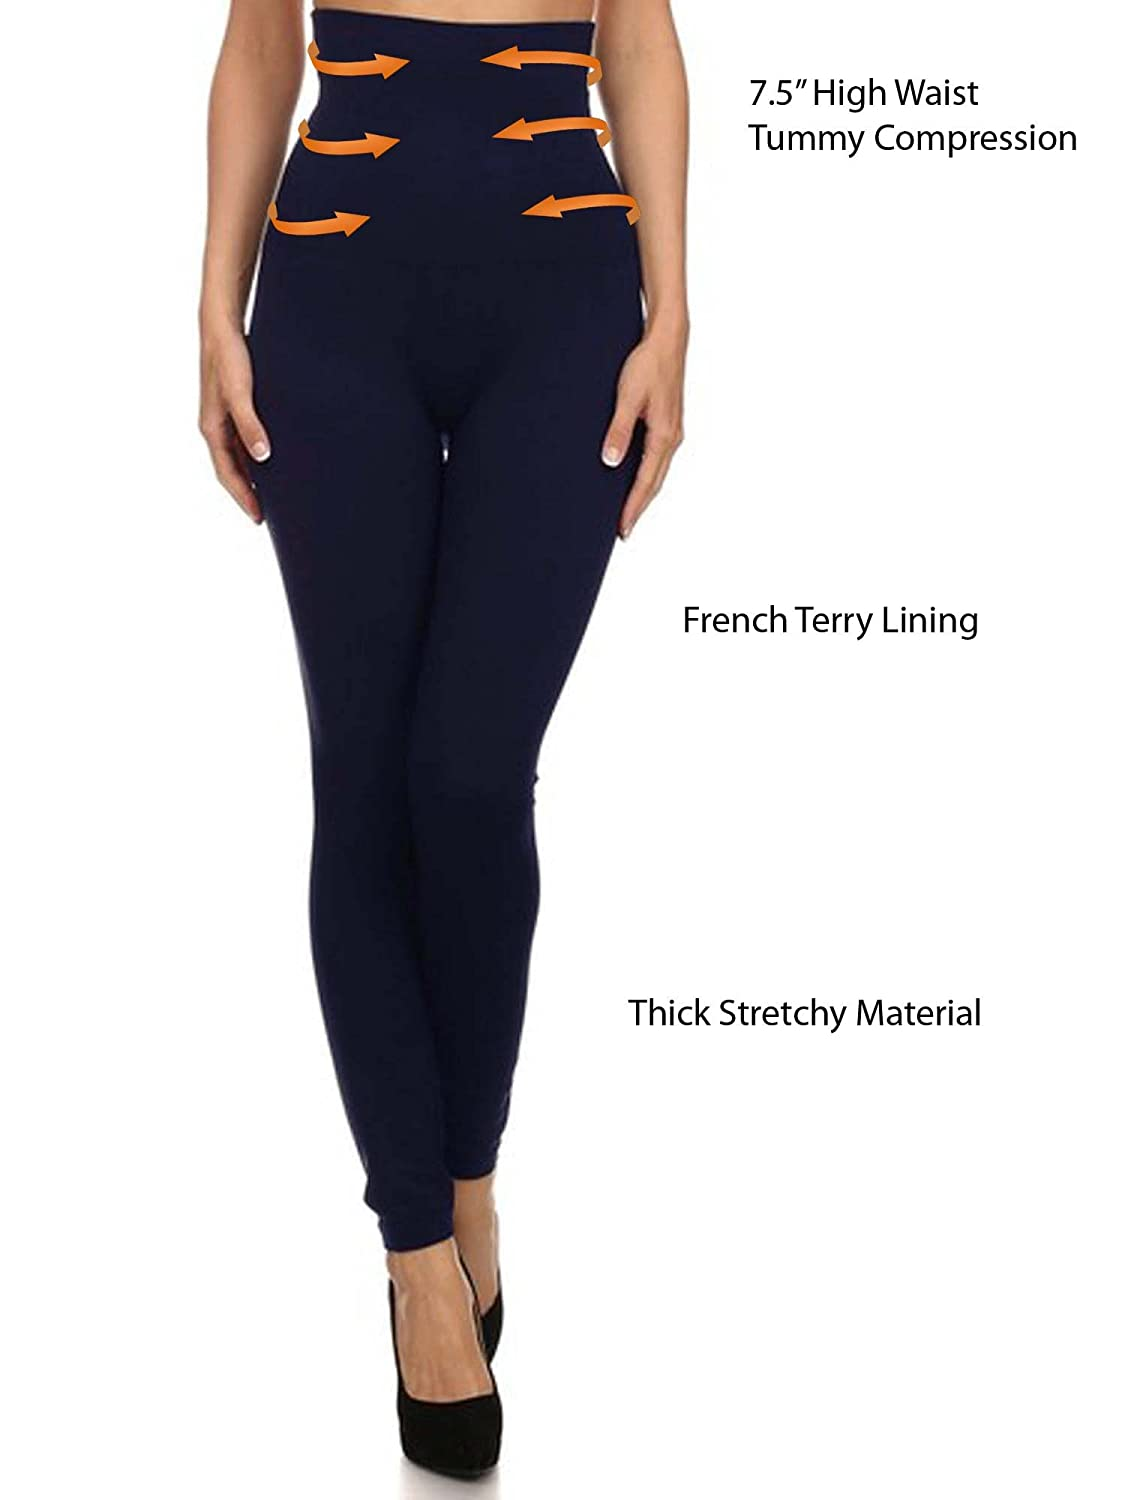 7b7829d1dec583 Premium Women Thick High Waist Tummy Compression Slimming Leggings French  Terry Lining at Amazon Women's Clothing store: